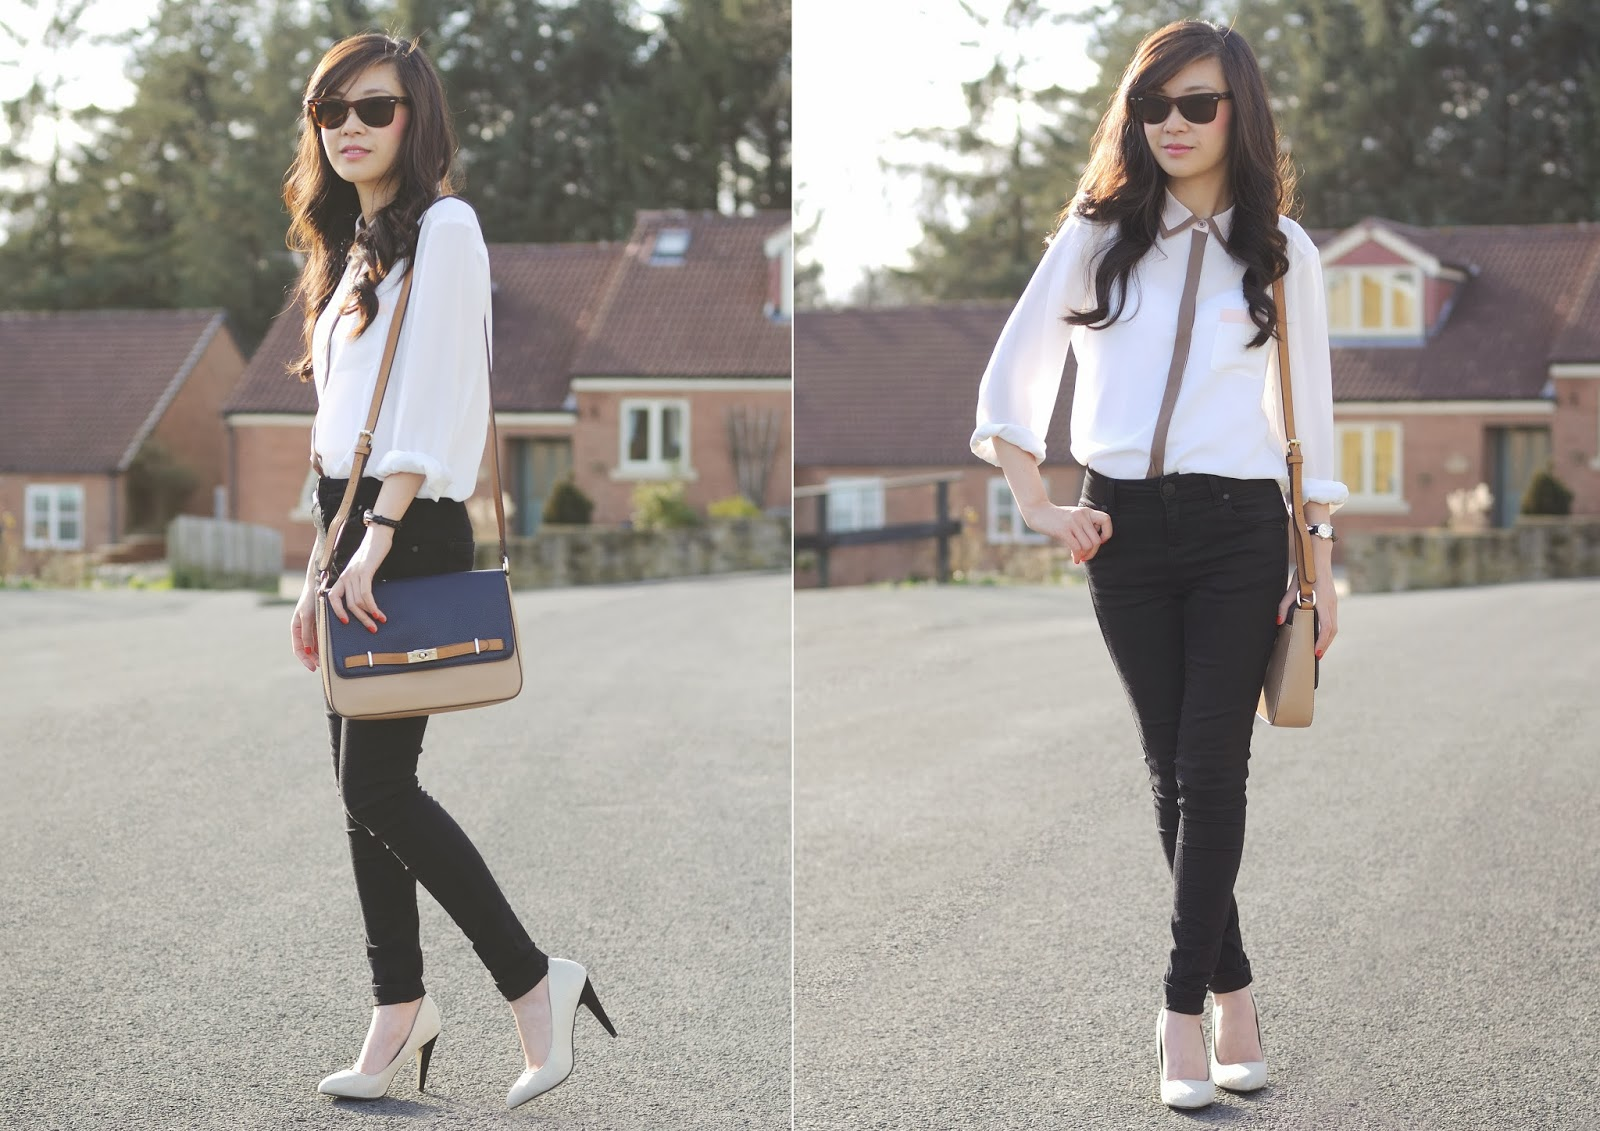 laura ashley blouse, how to style a white blouse, styling skinny jeans for a smart look,